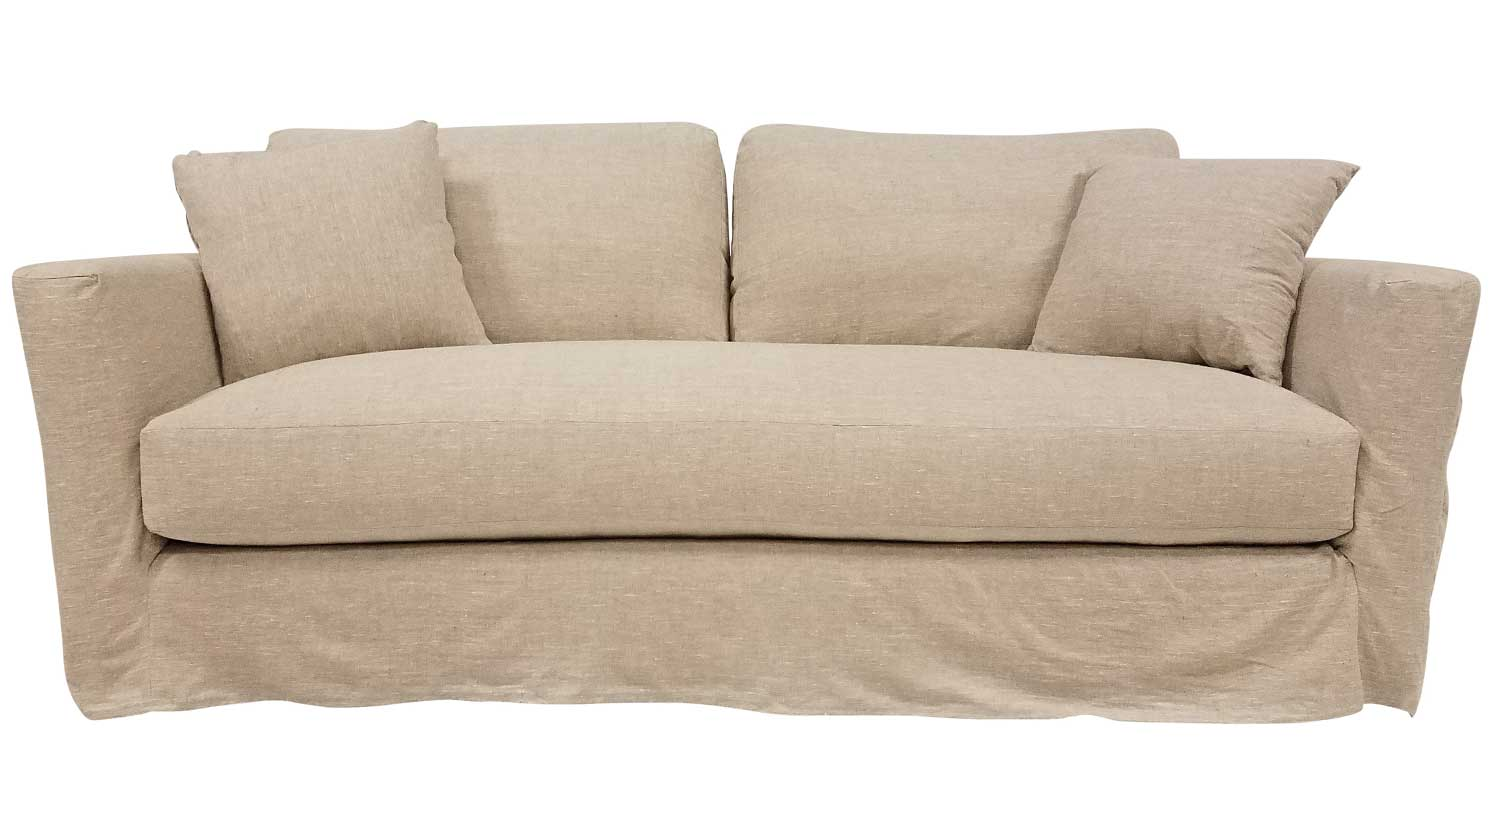 best price on sofas cover para sofa reese velvet grey online at sod